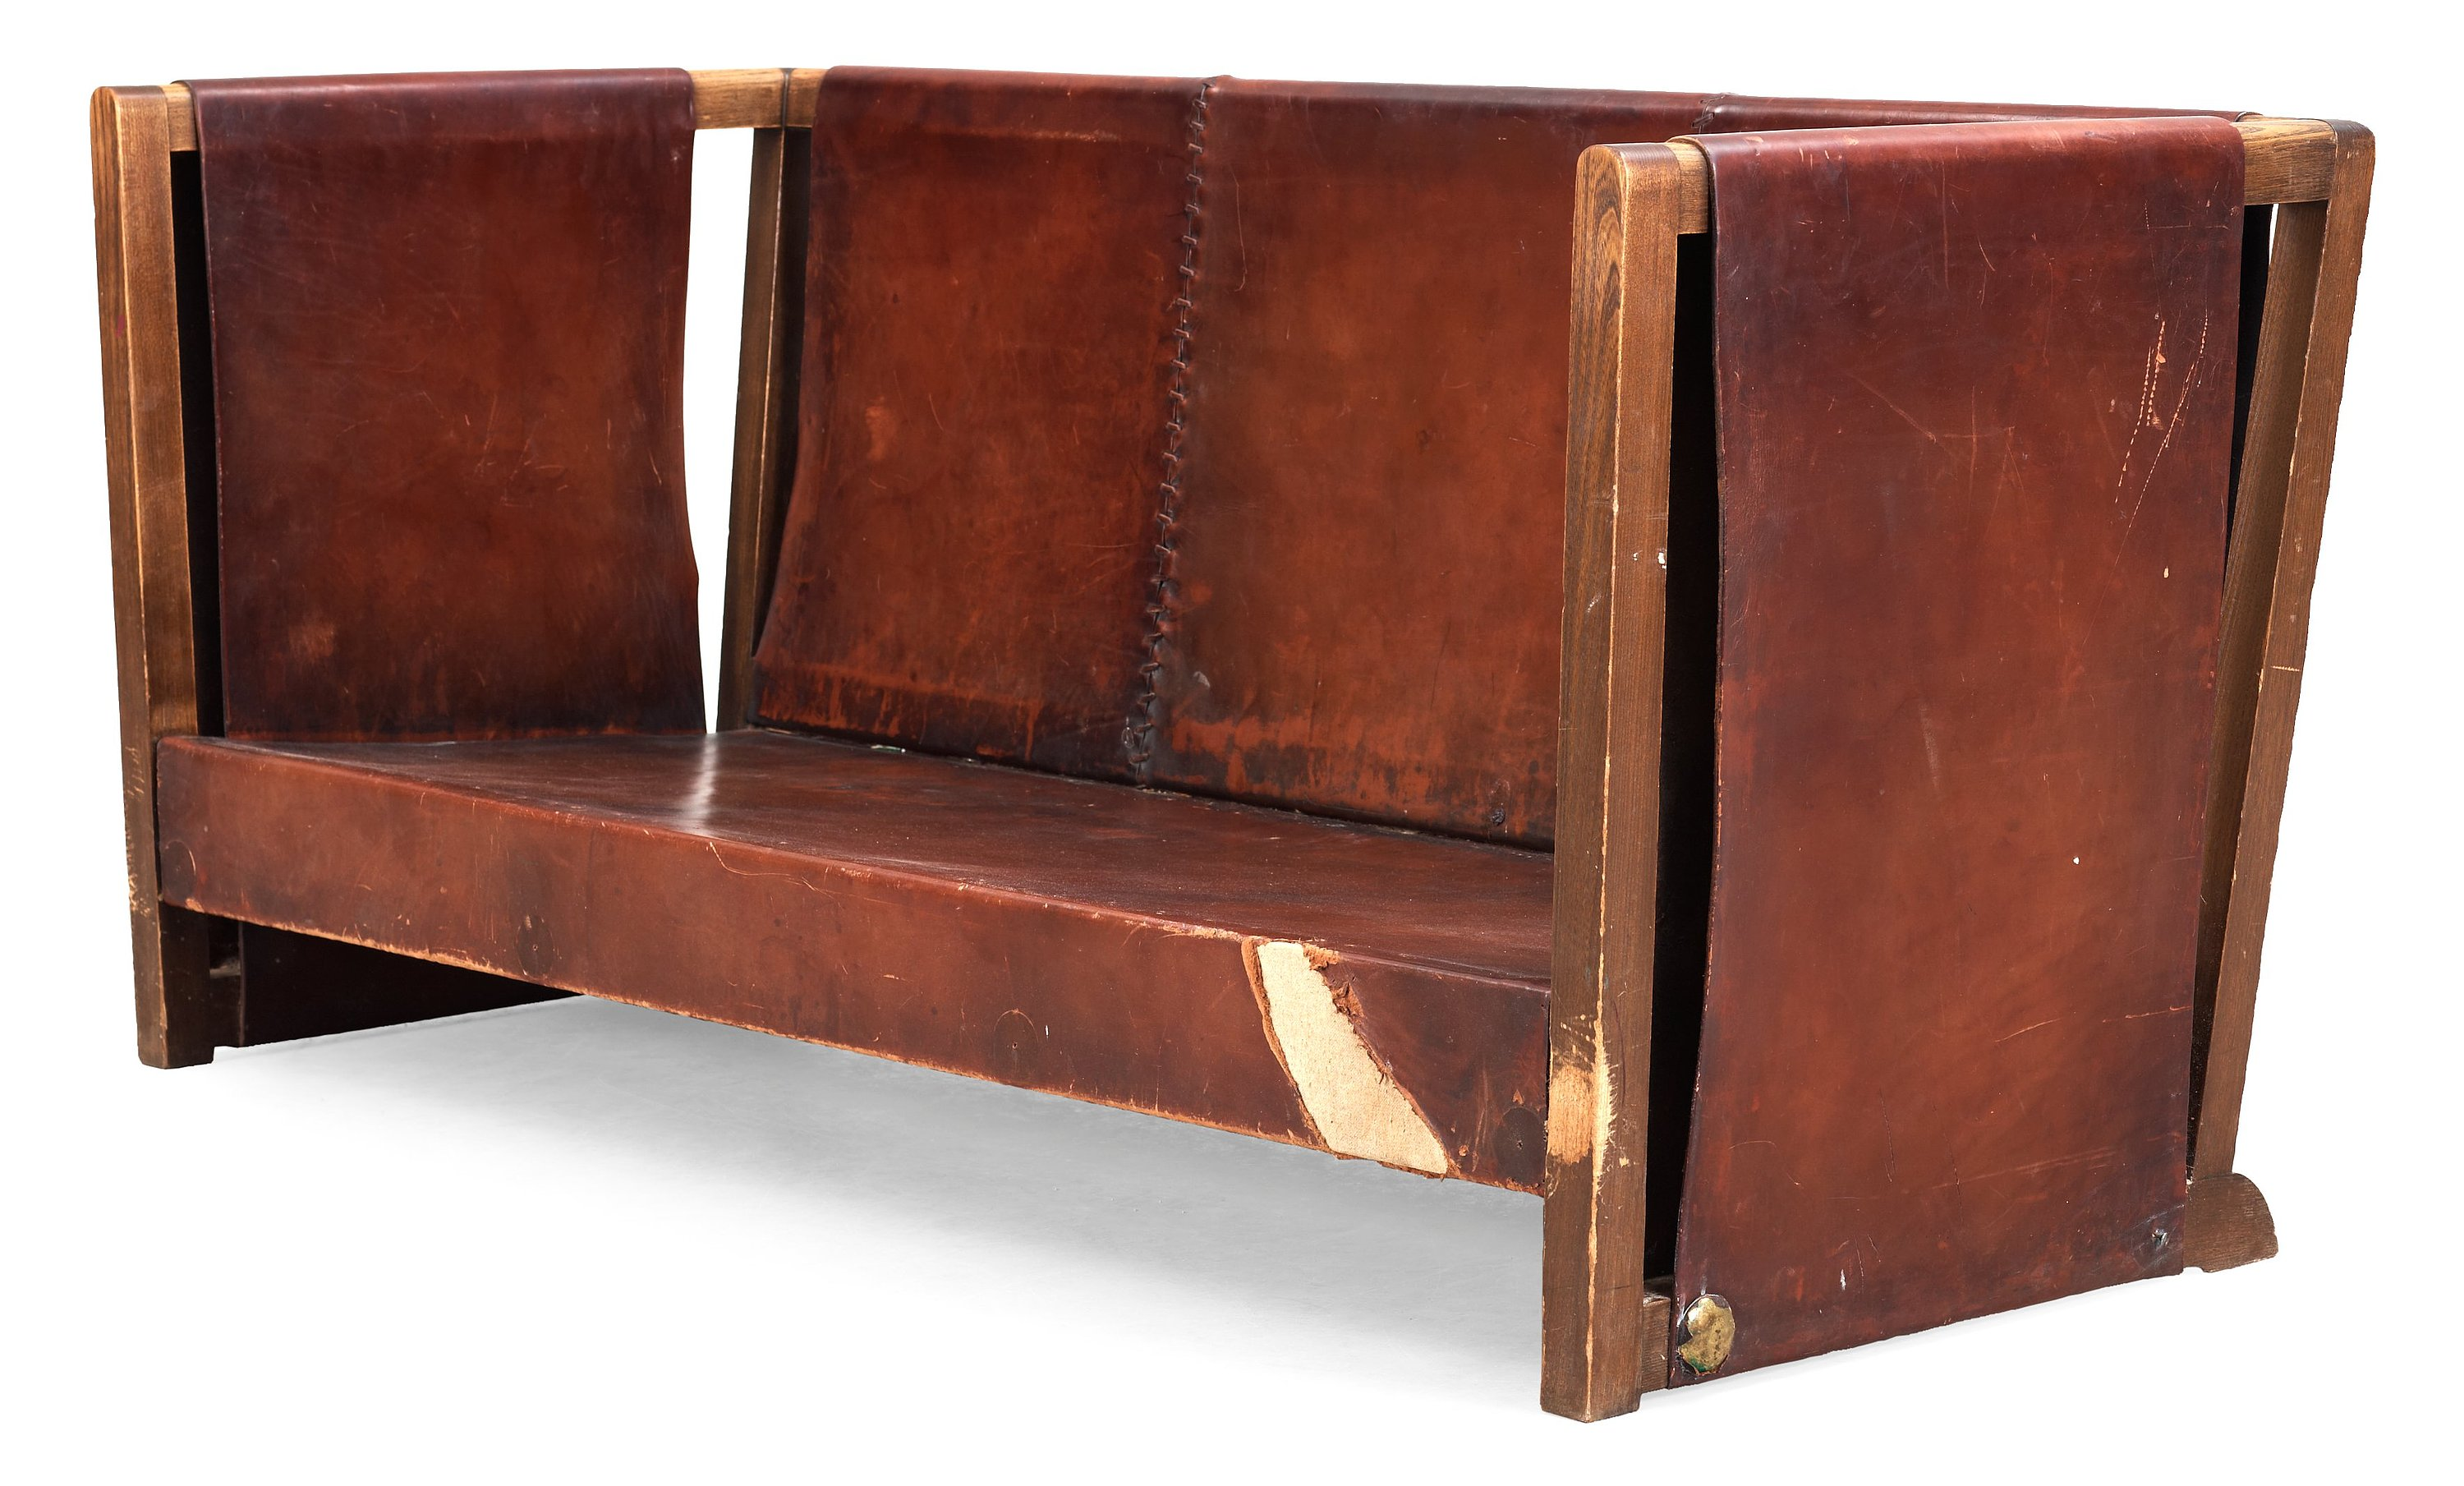 leather and wood sofa. 8609567 Bukobject Leather And Wood Sofa E